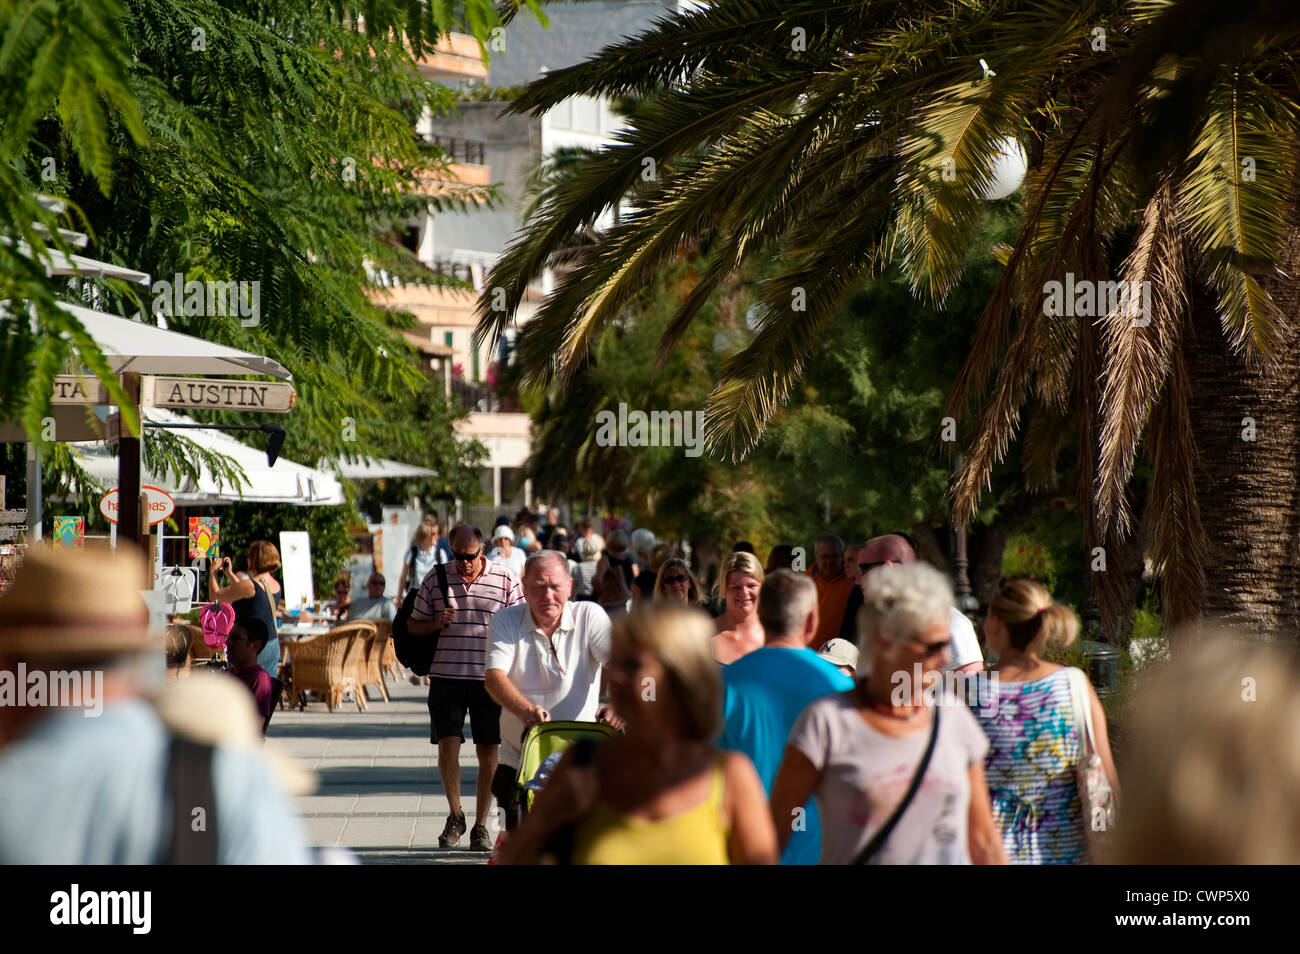 Holidaymakers visiting the popular holiday resort of Puerto de Alcudia, Mallorca, Spain - Stock Image